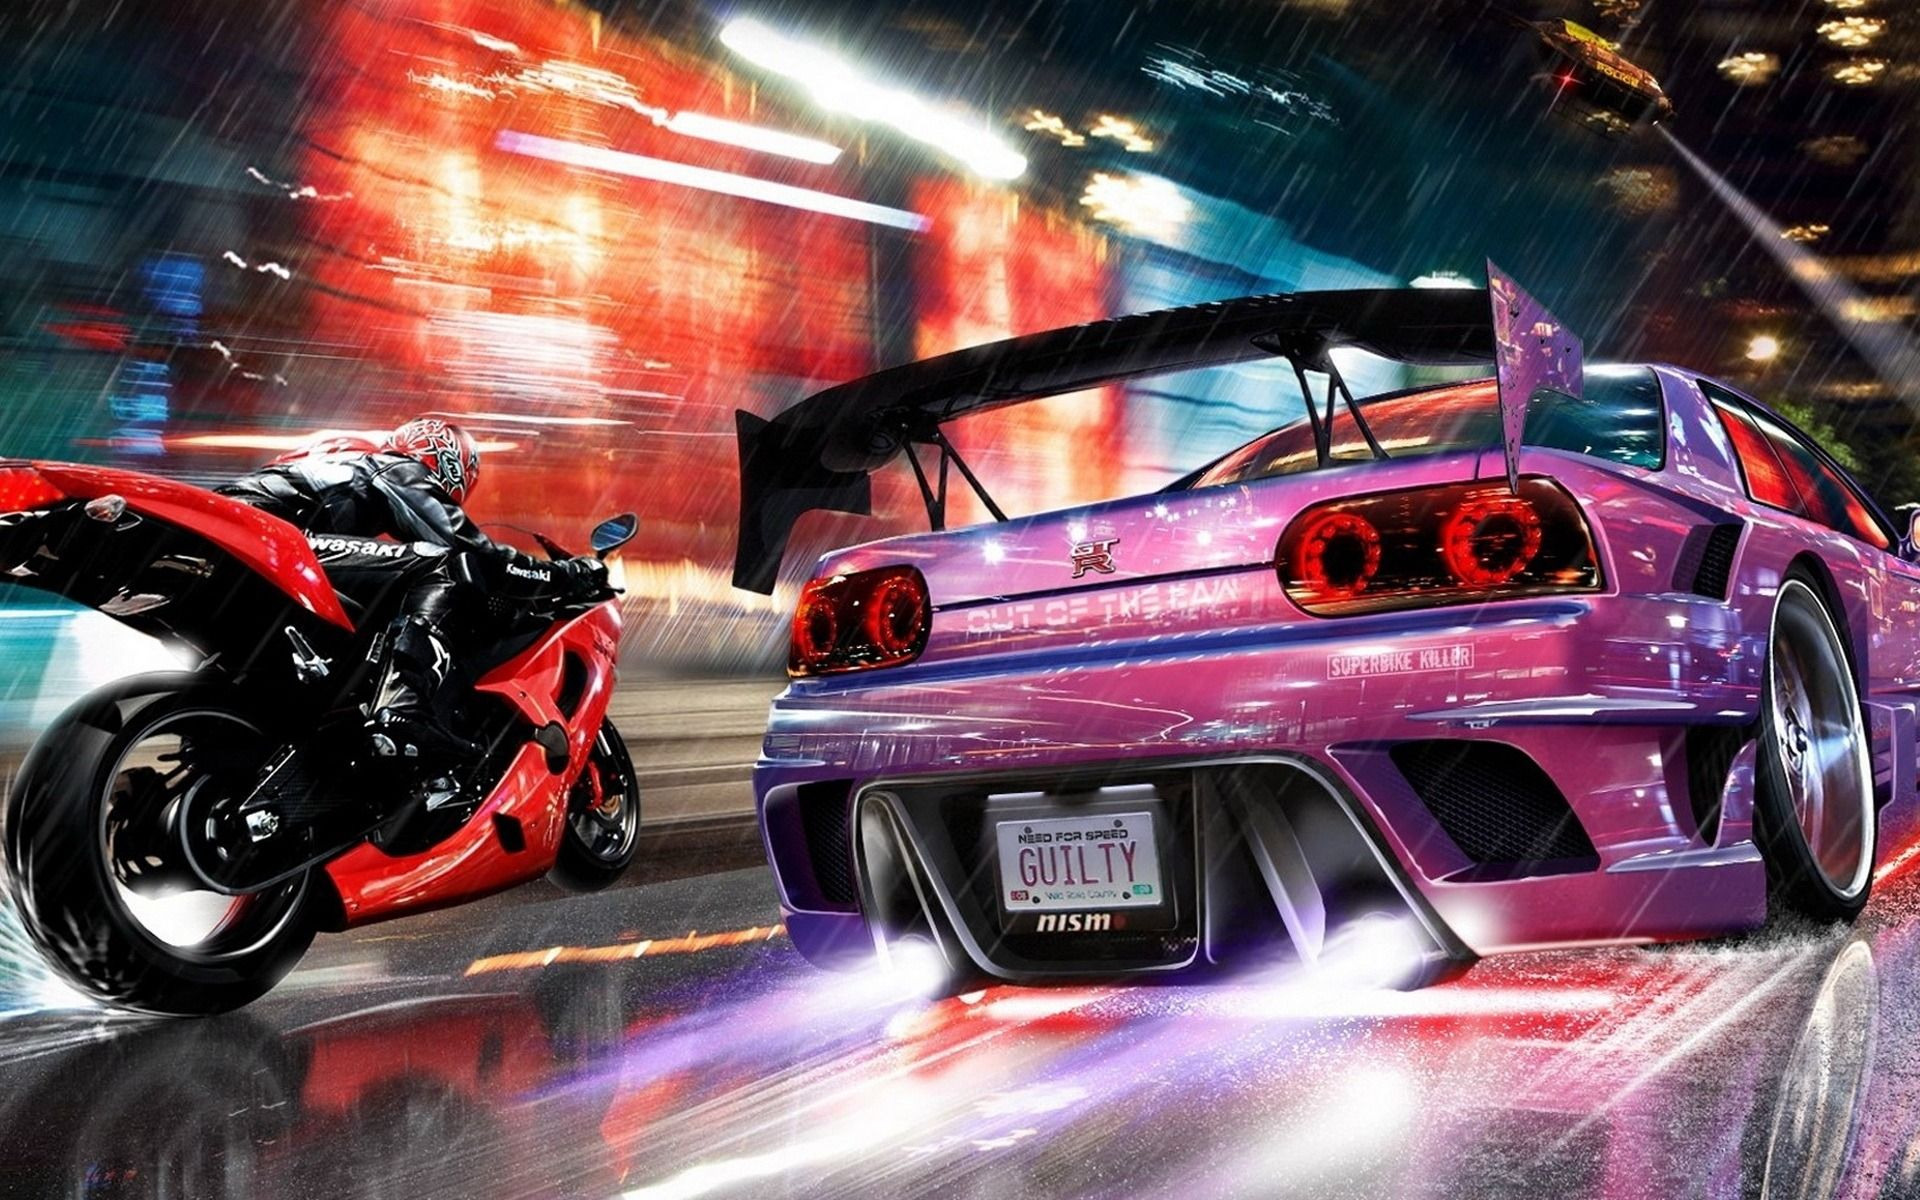 Need for speed hd wallpapers and backgrounds best games wallpapers need for speed hd wallpapers and backgrounds voltagebd Choice Image